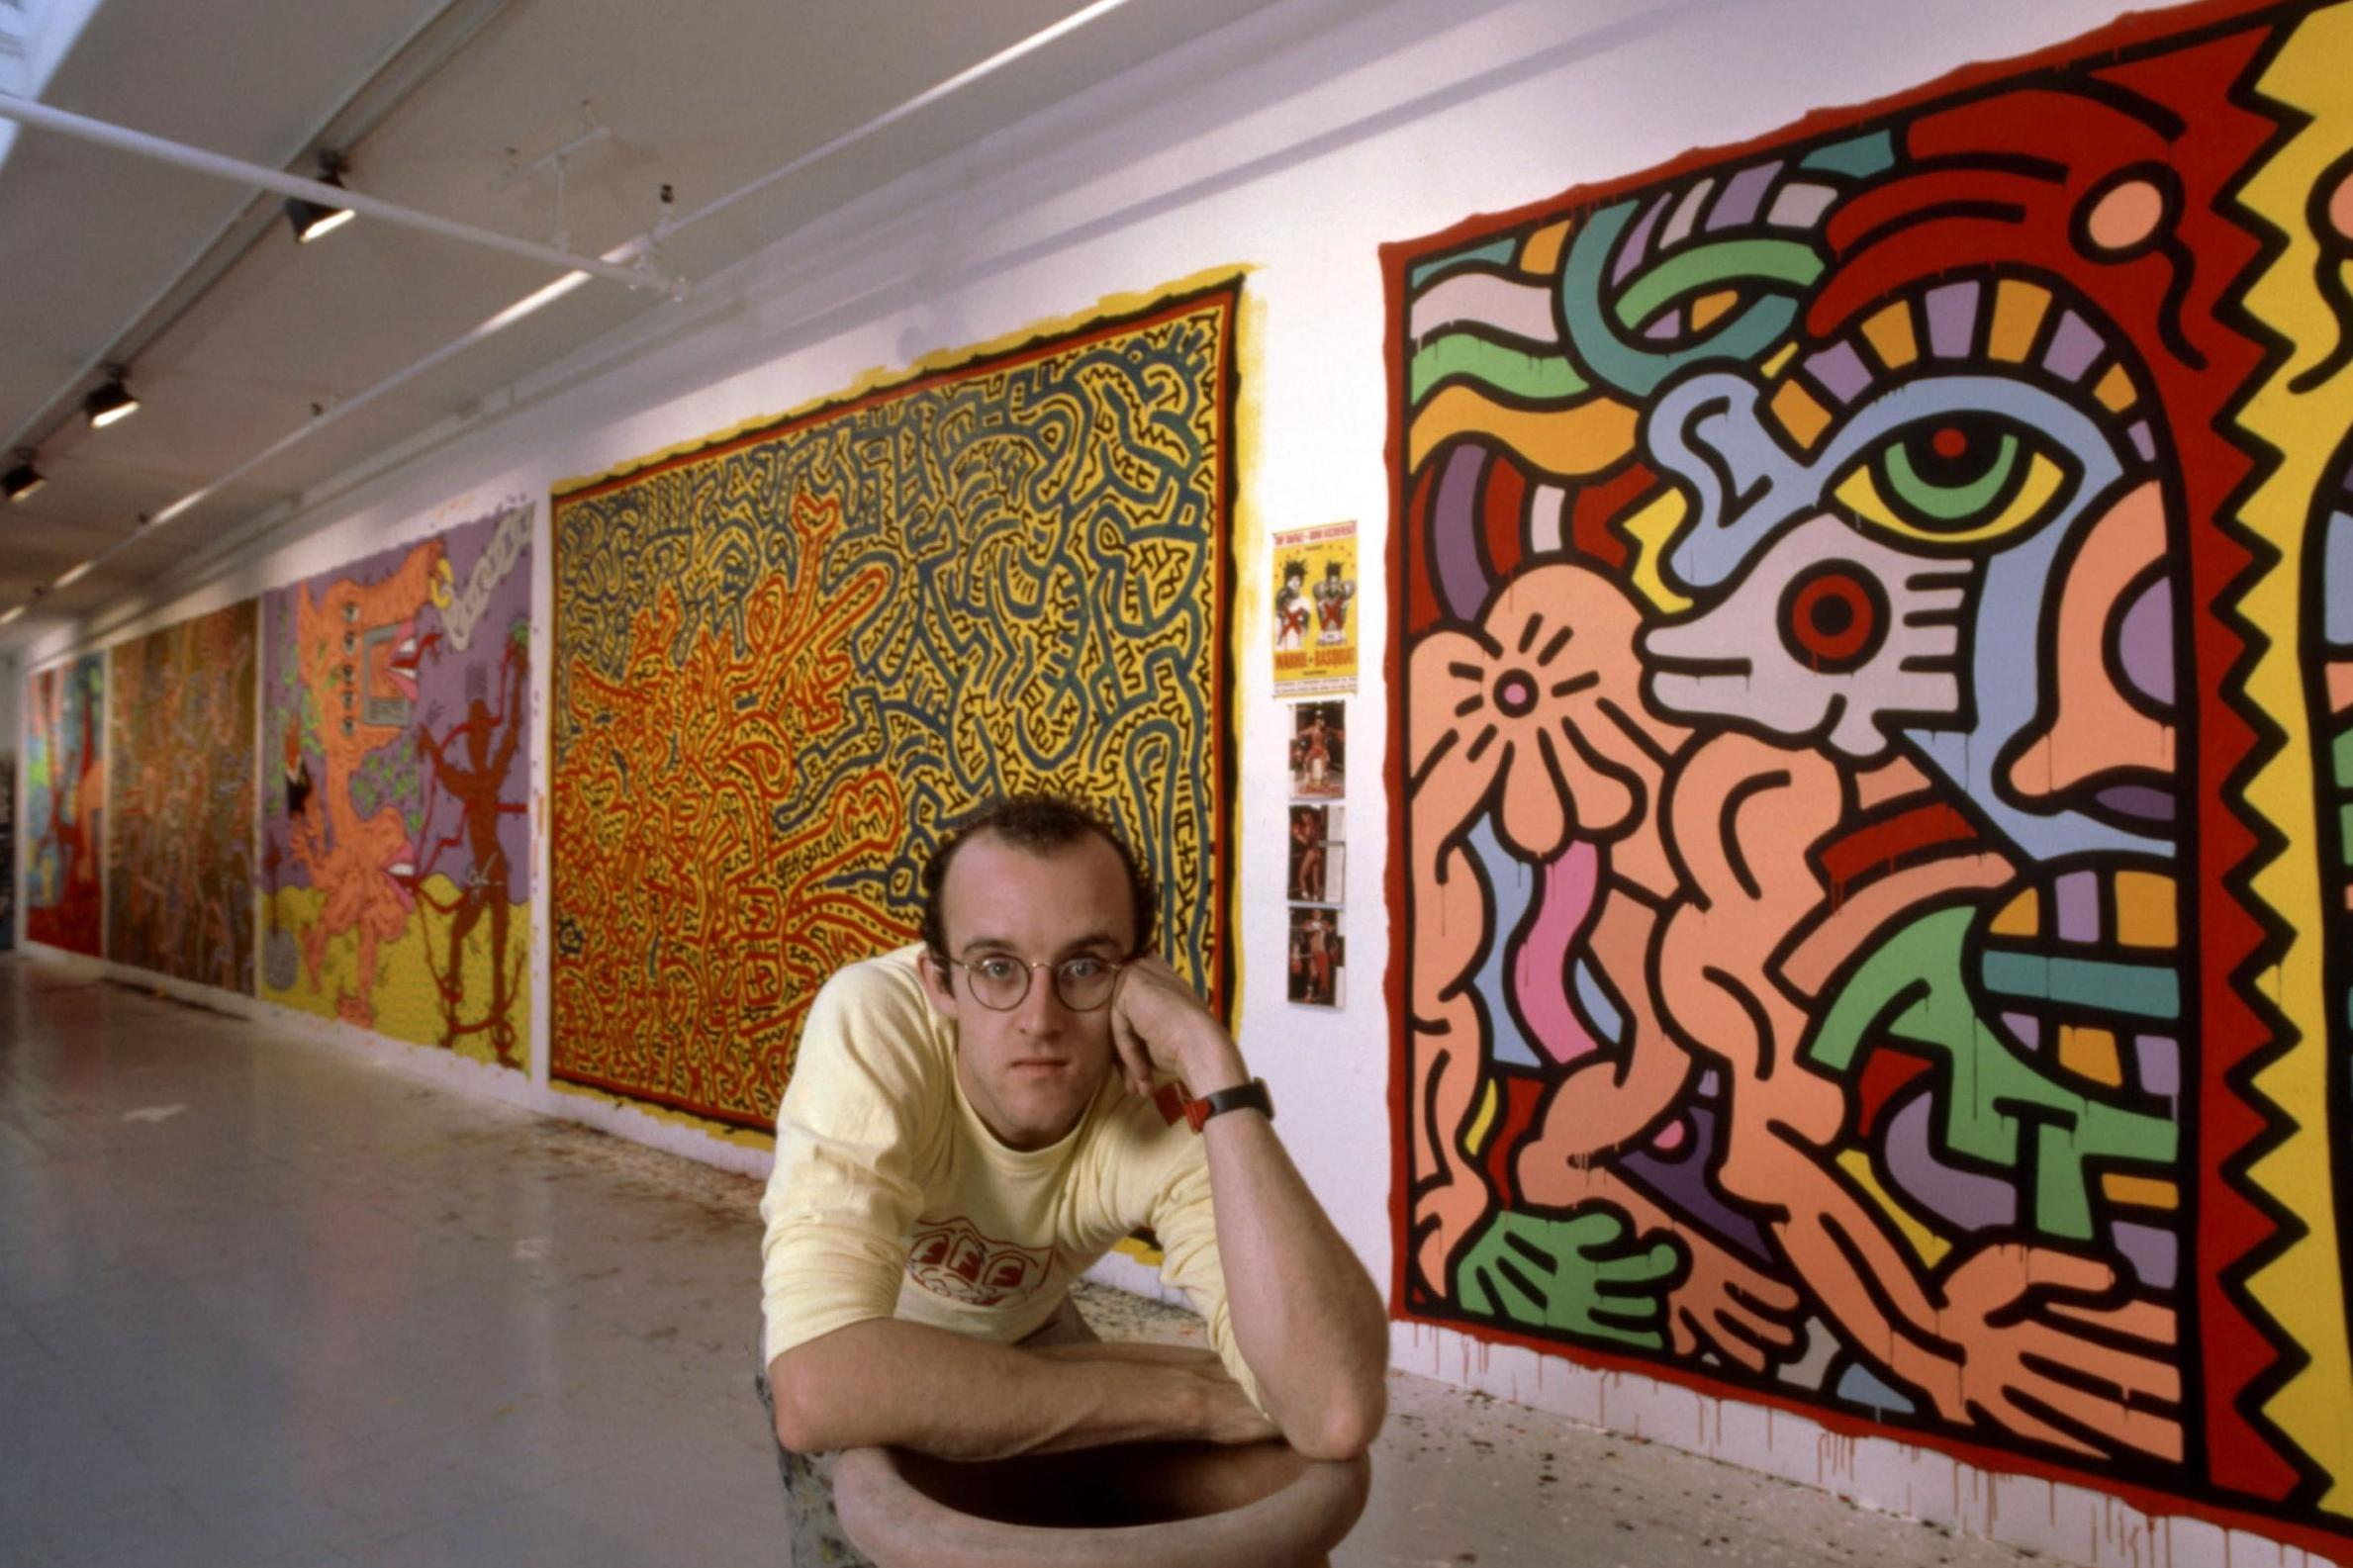 Keith Haring mural goes up for auction after being cut out of Catholic youth centre